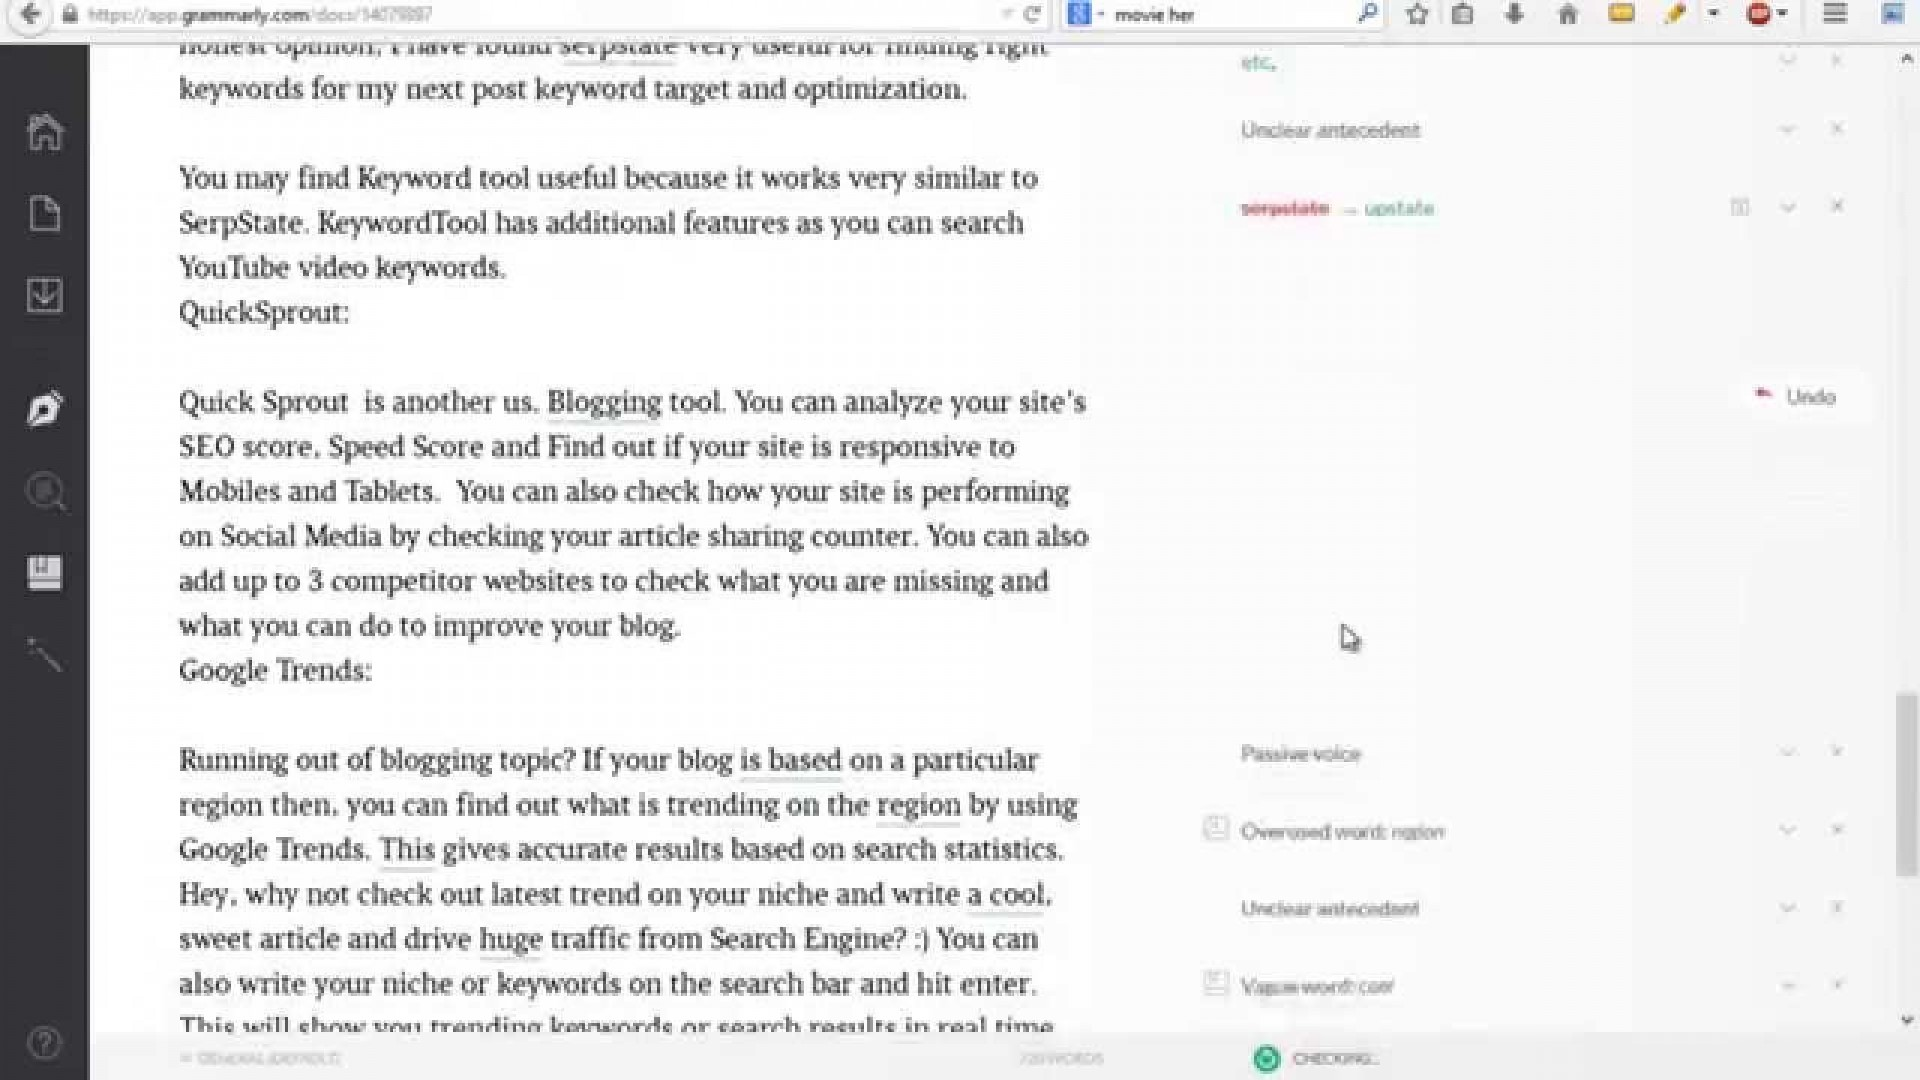 007 Essay Checker Grammar Check Your Error Online Grammarly Maxresde College Surprising For Mistakes Free Correct 1920